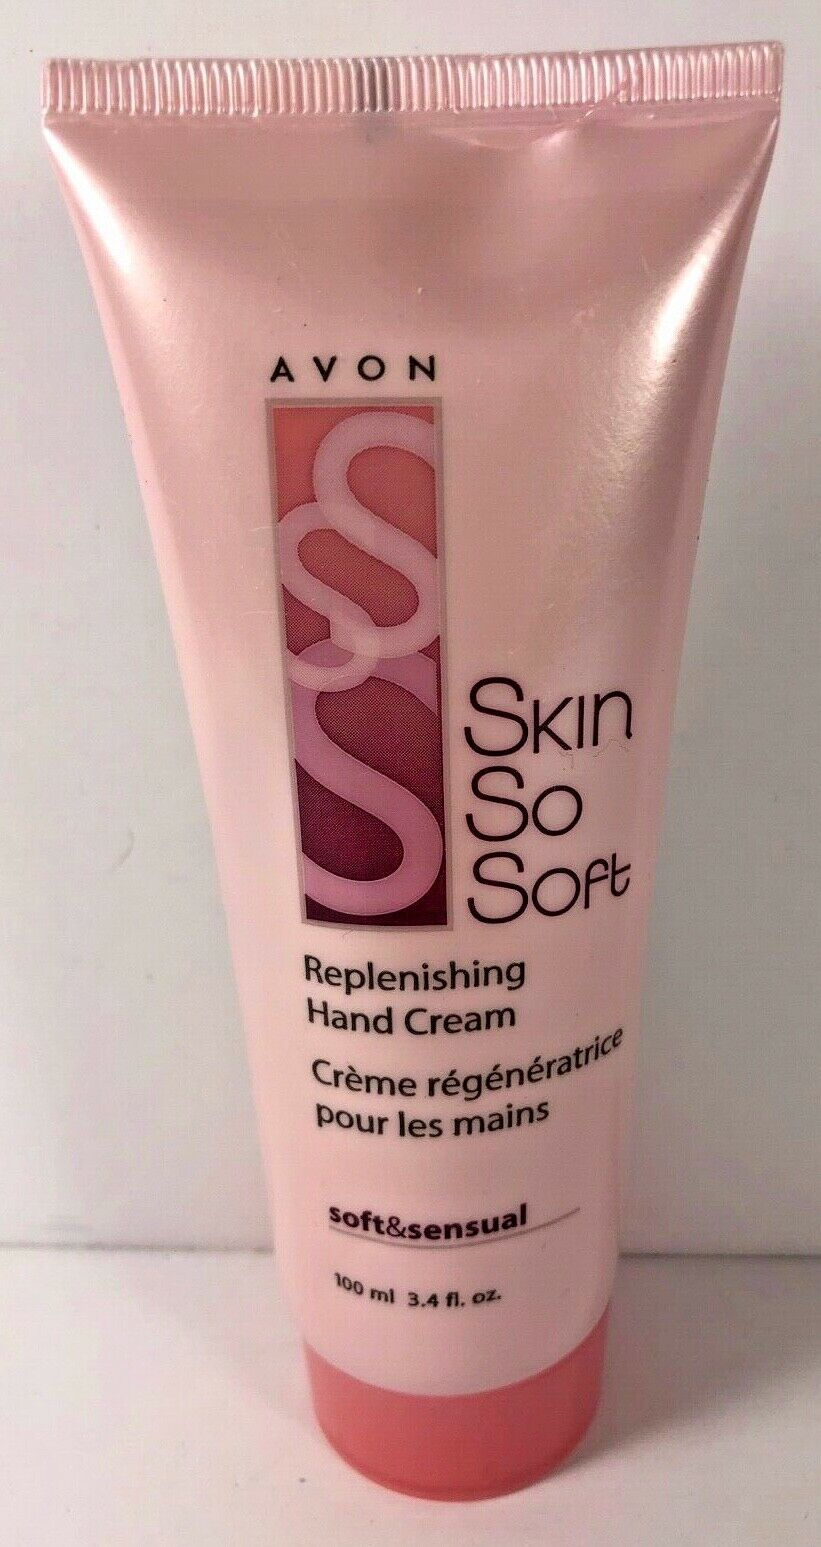 Avon SKIN SO SOFT Soft & Sensual Replenishing Hand Cream 3.4 fl.oz.